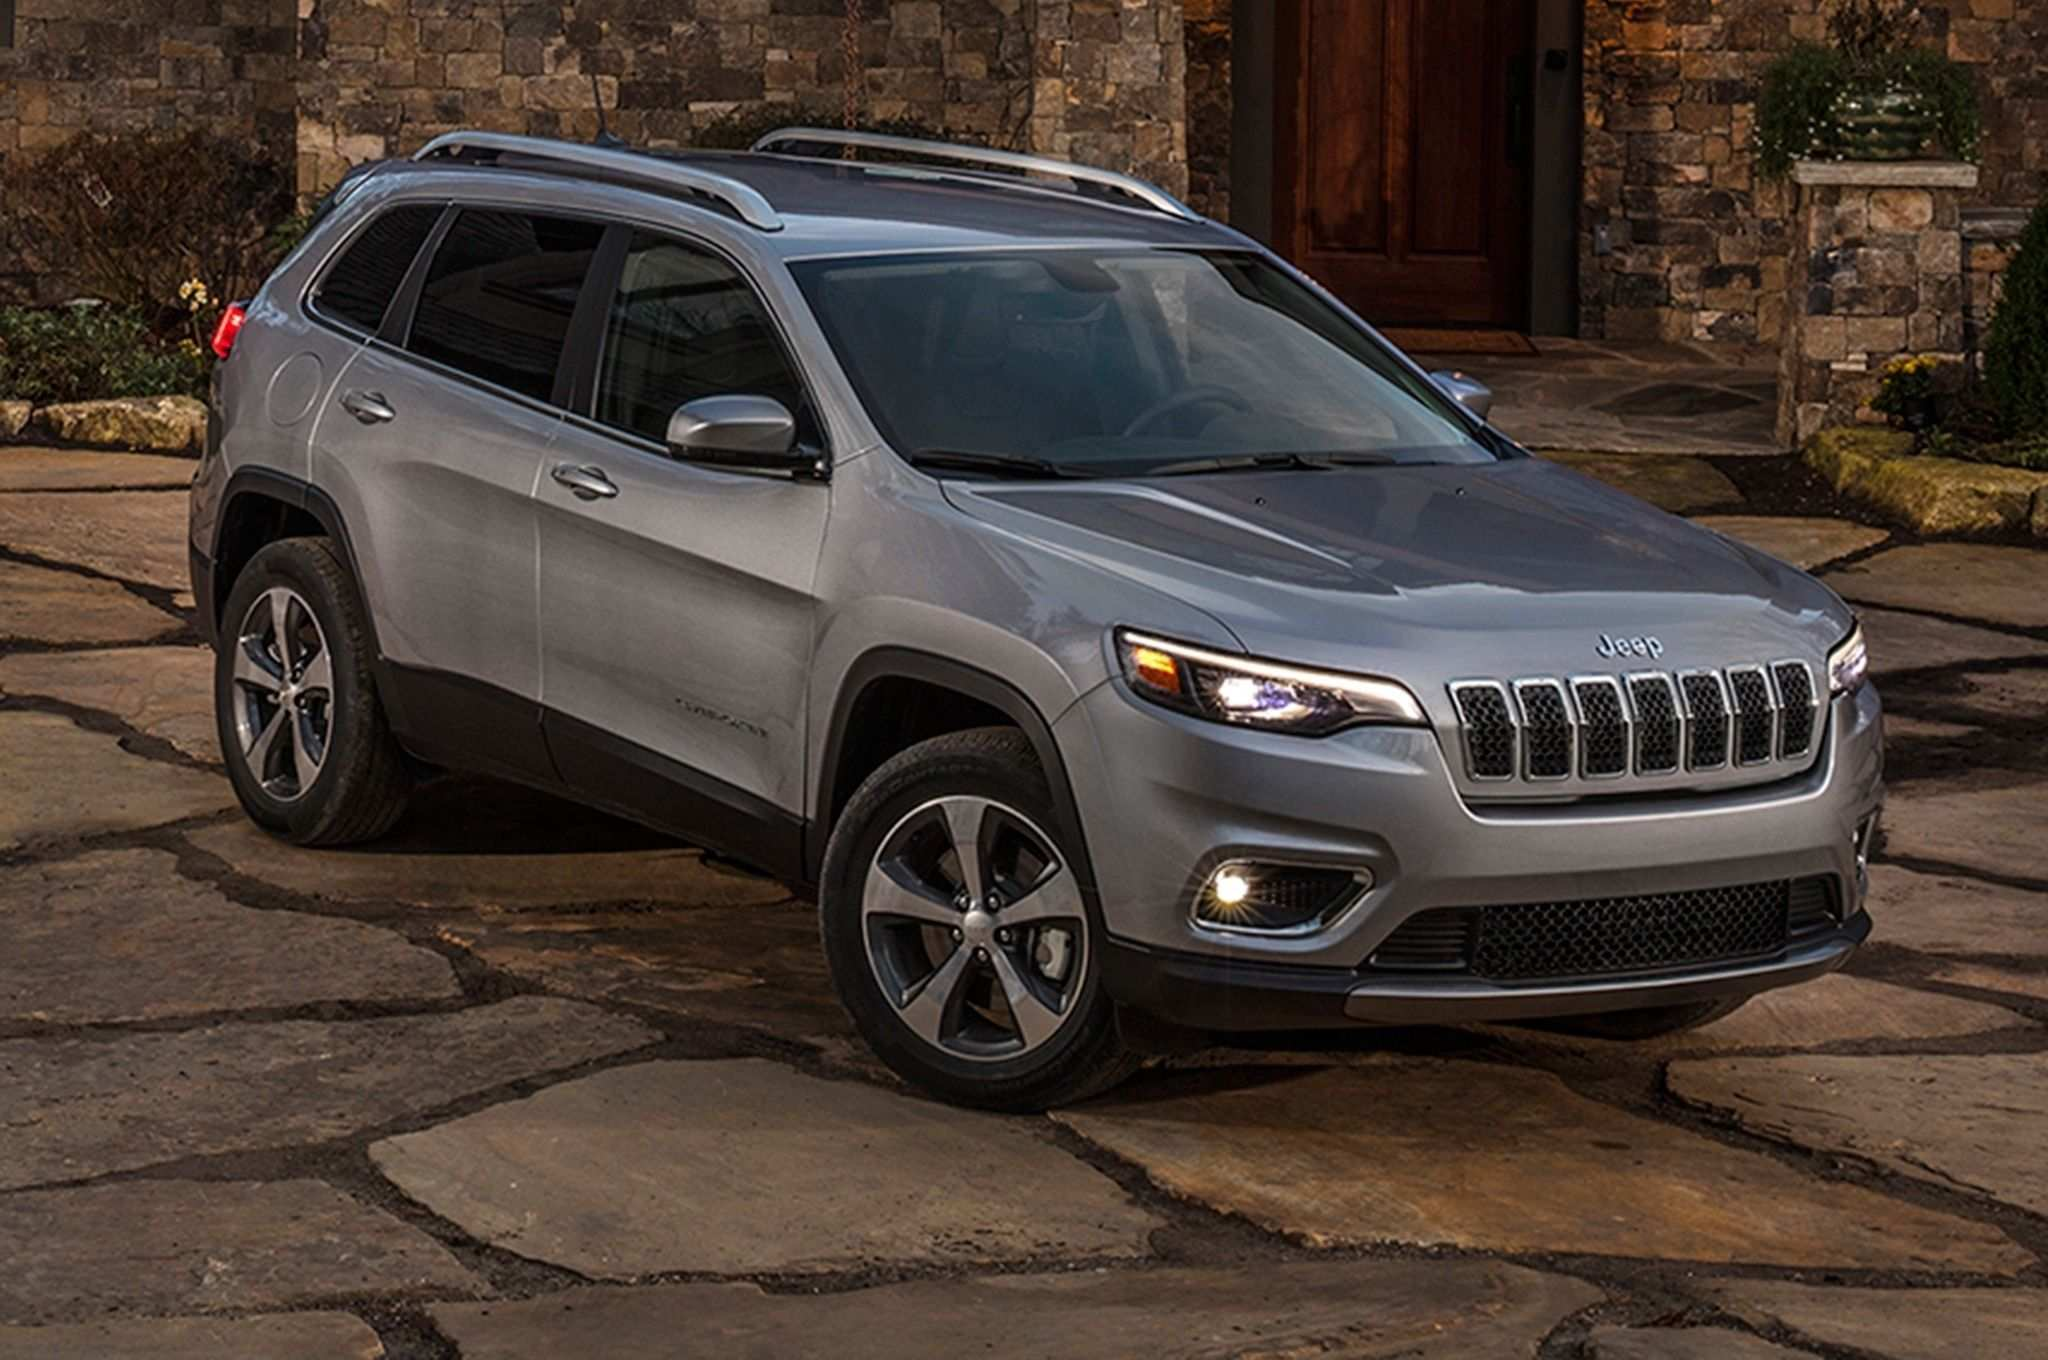 45 All New The 2019 Jeep Cherokee Ride Quality Release Date Price And Review Configurations for The 2019 Jeep Cherokee Ride Quality Release Date Price And Review